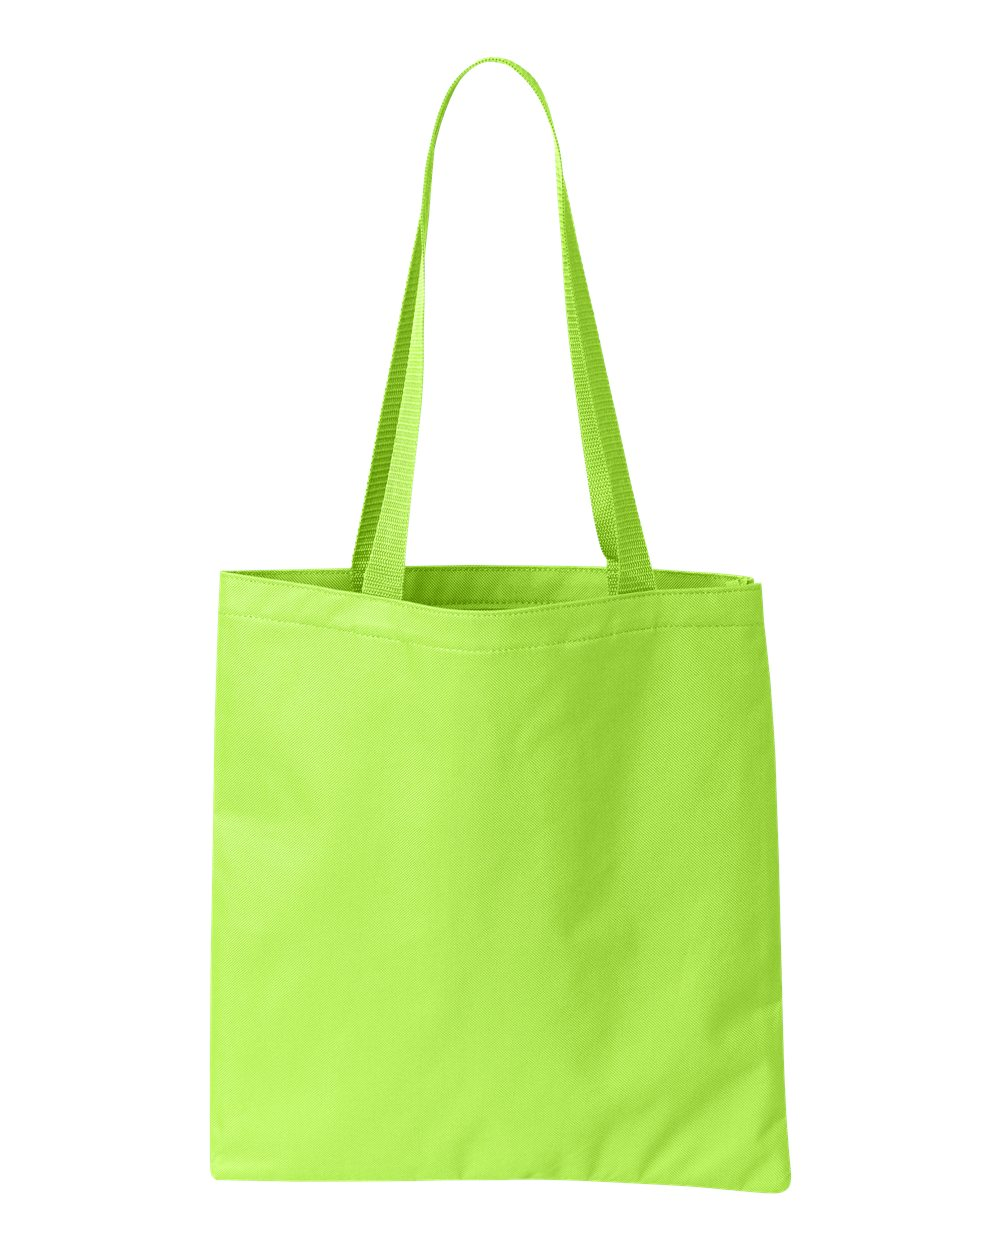 click to view Safety Neon Green